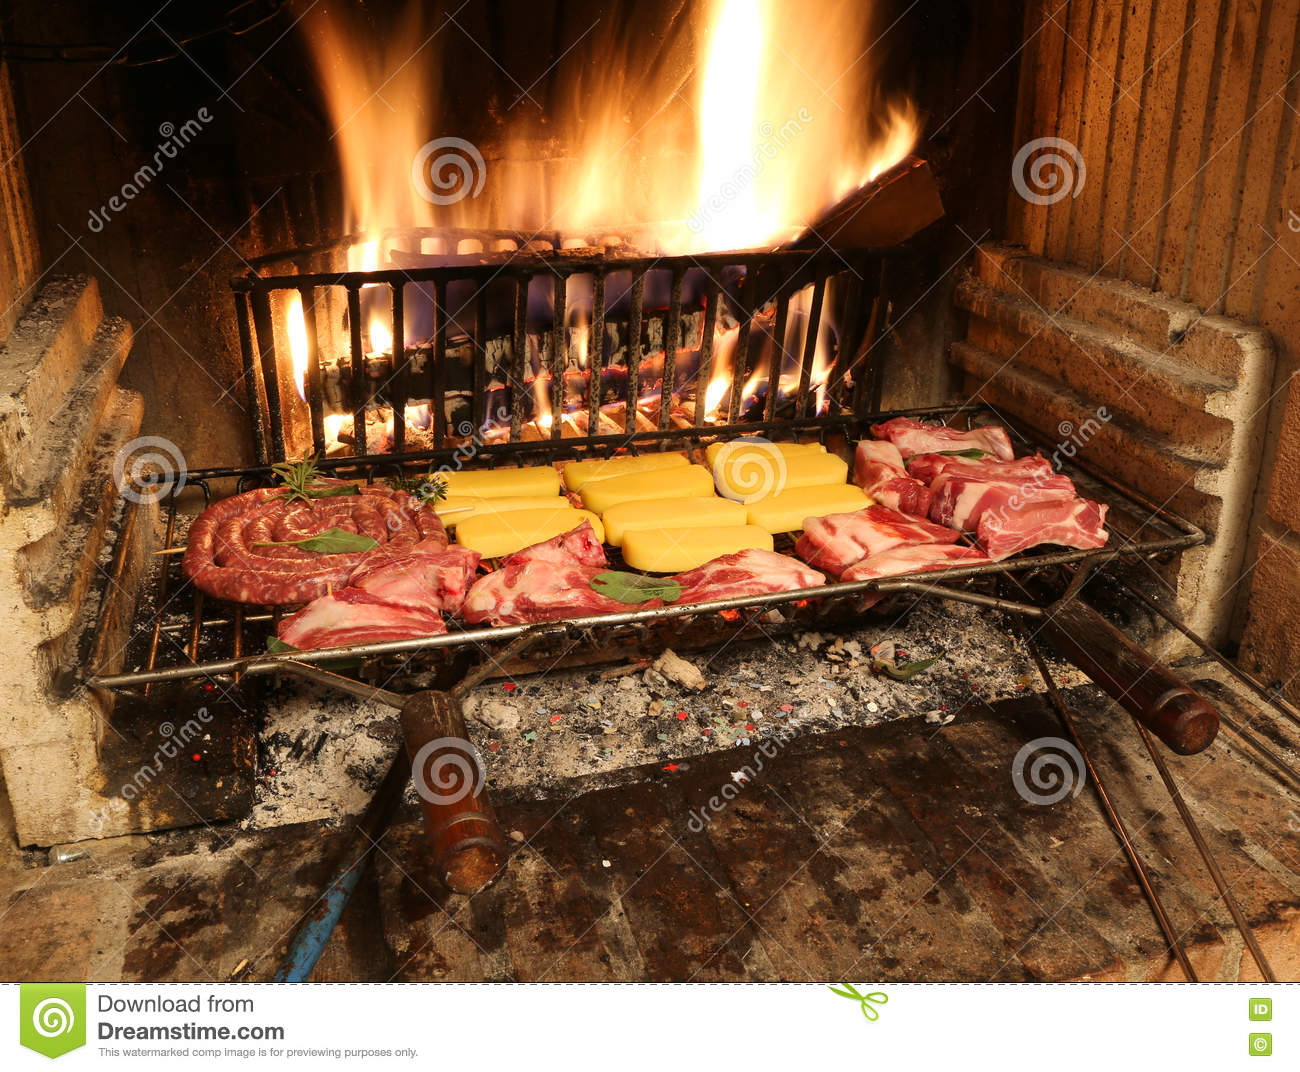 Cooking Warmers Vintage Fireplace ~ Raw meat cooking in the fireplace with a warm fire lit